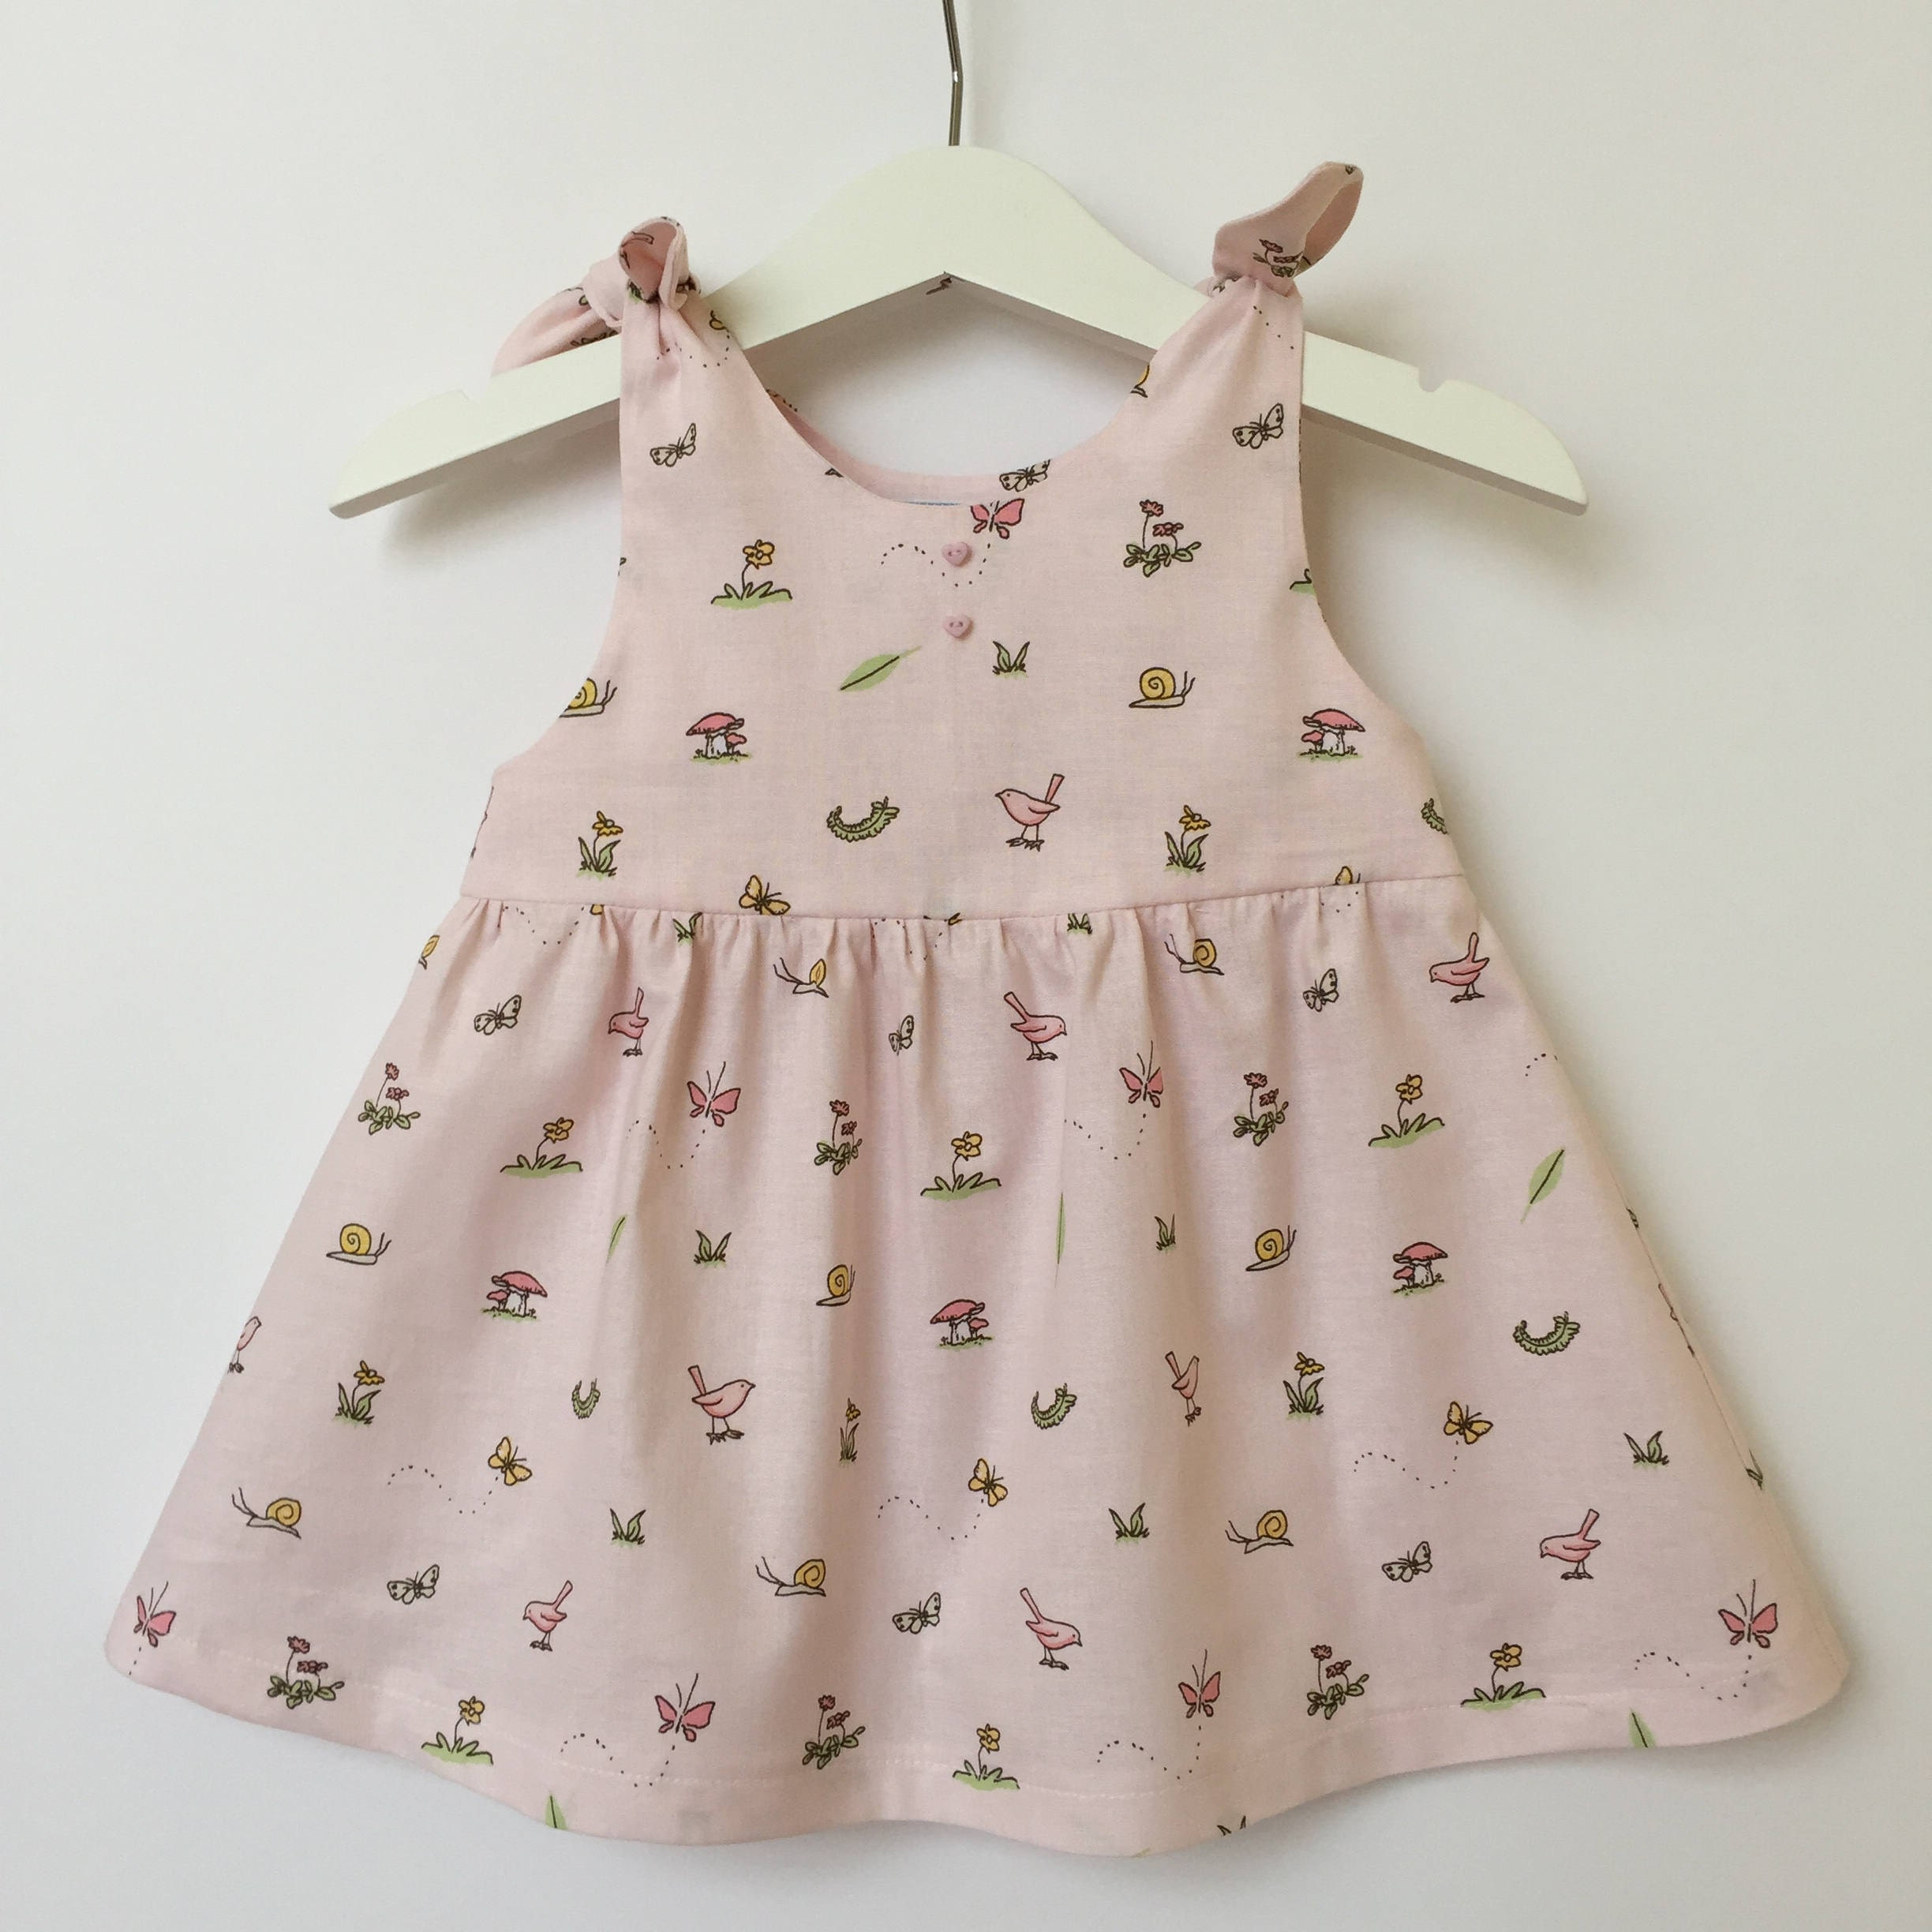 CUSTOM MADE Baby Girls Dress Baby Dress Cotton Dress